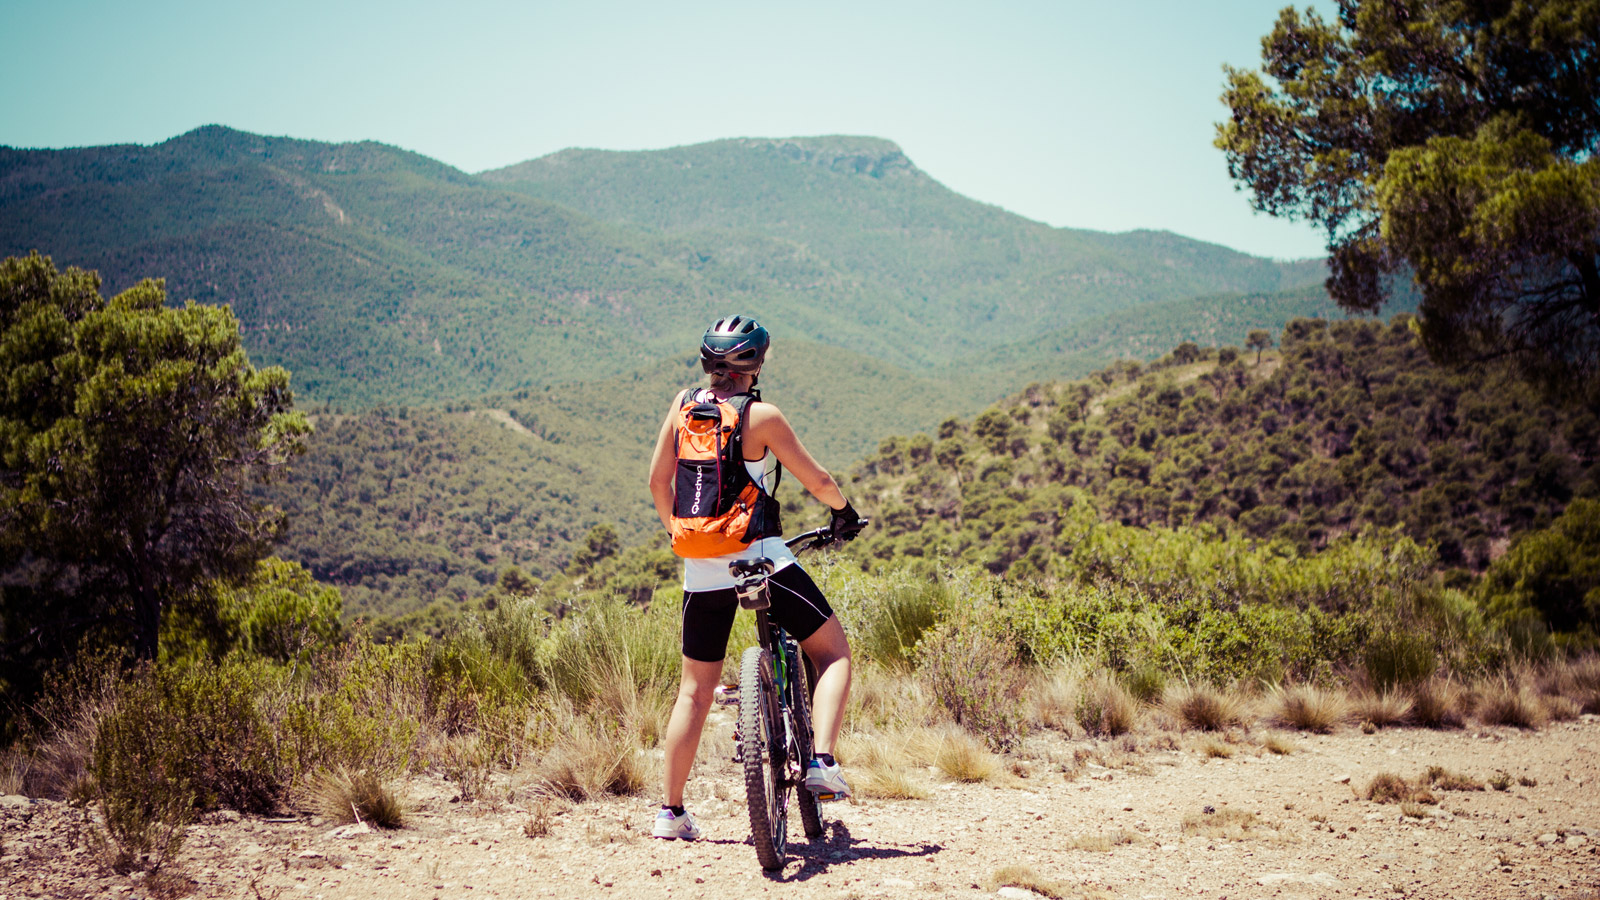 Sierra Espuna Mountain Biking In Costa Blanca Both Have Been Verified I Like The Bmtb A Lot However Just